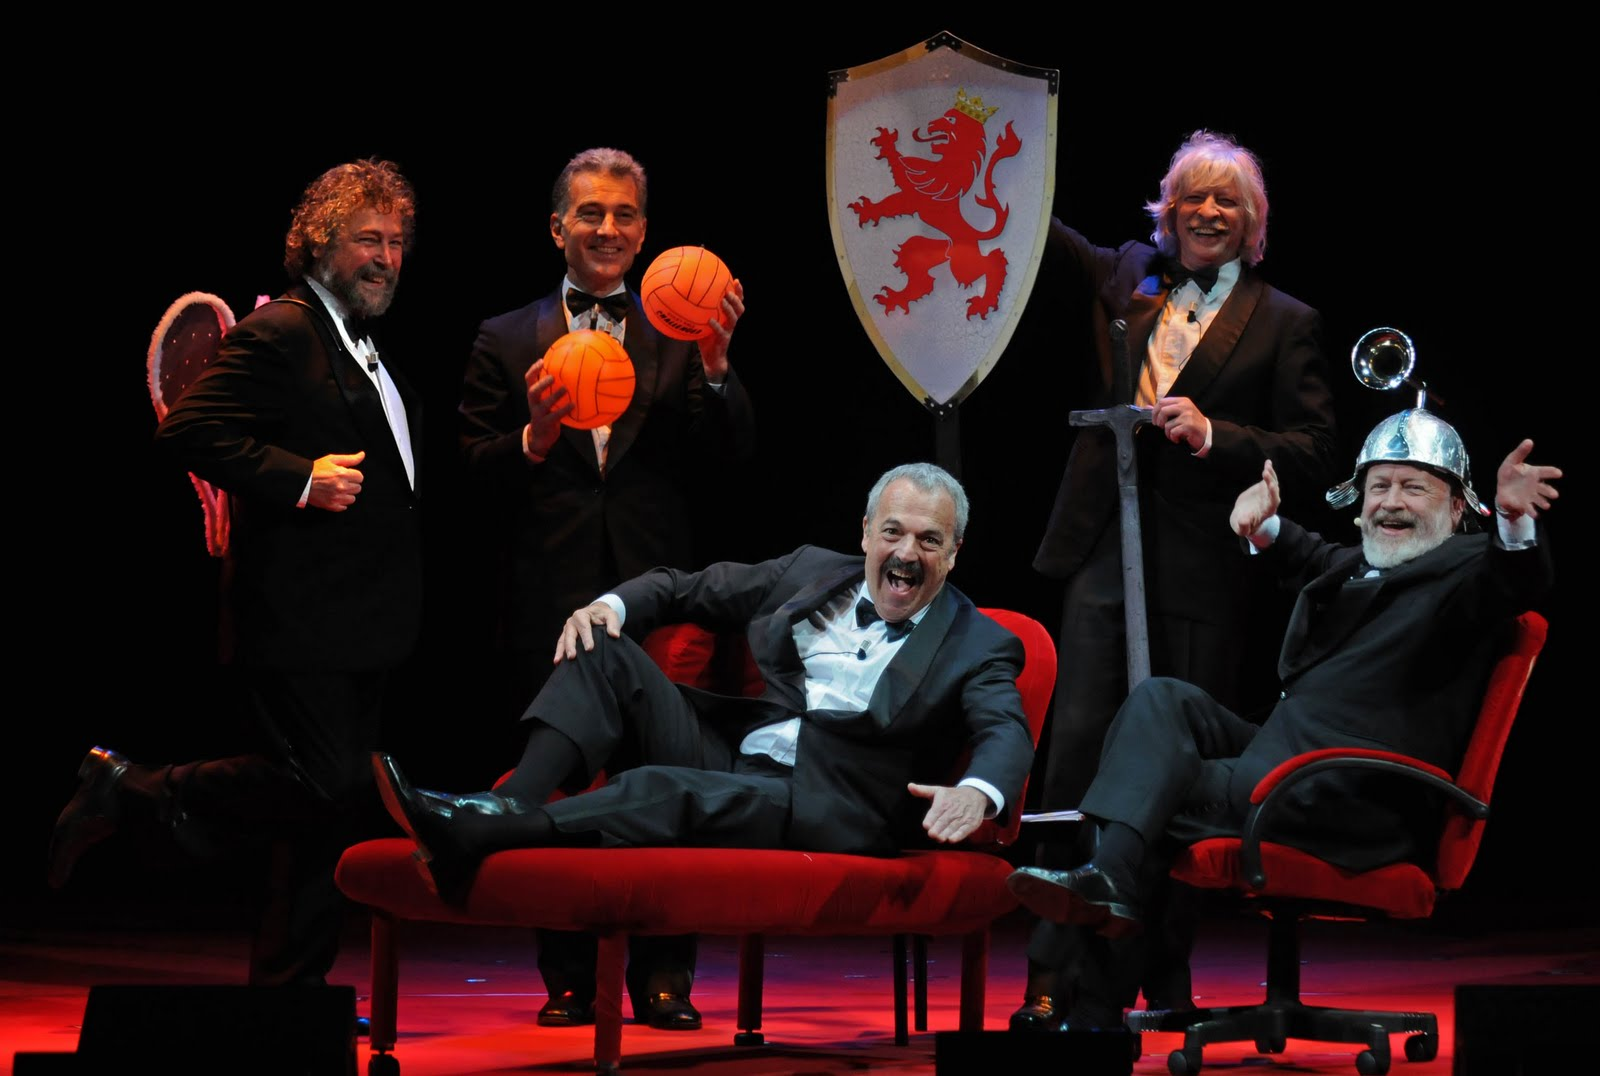 les luthiers (orgullo argentino).